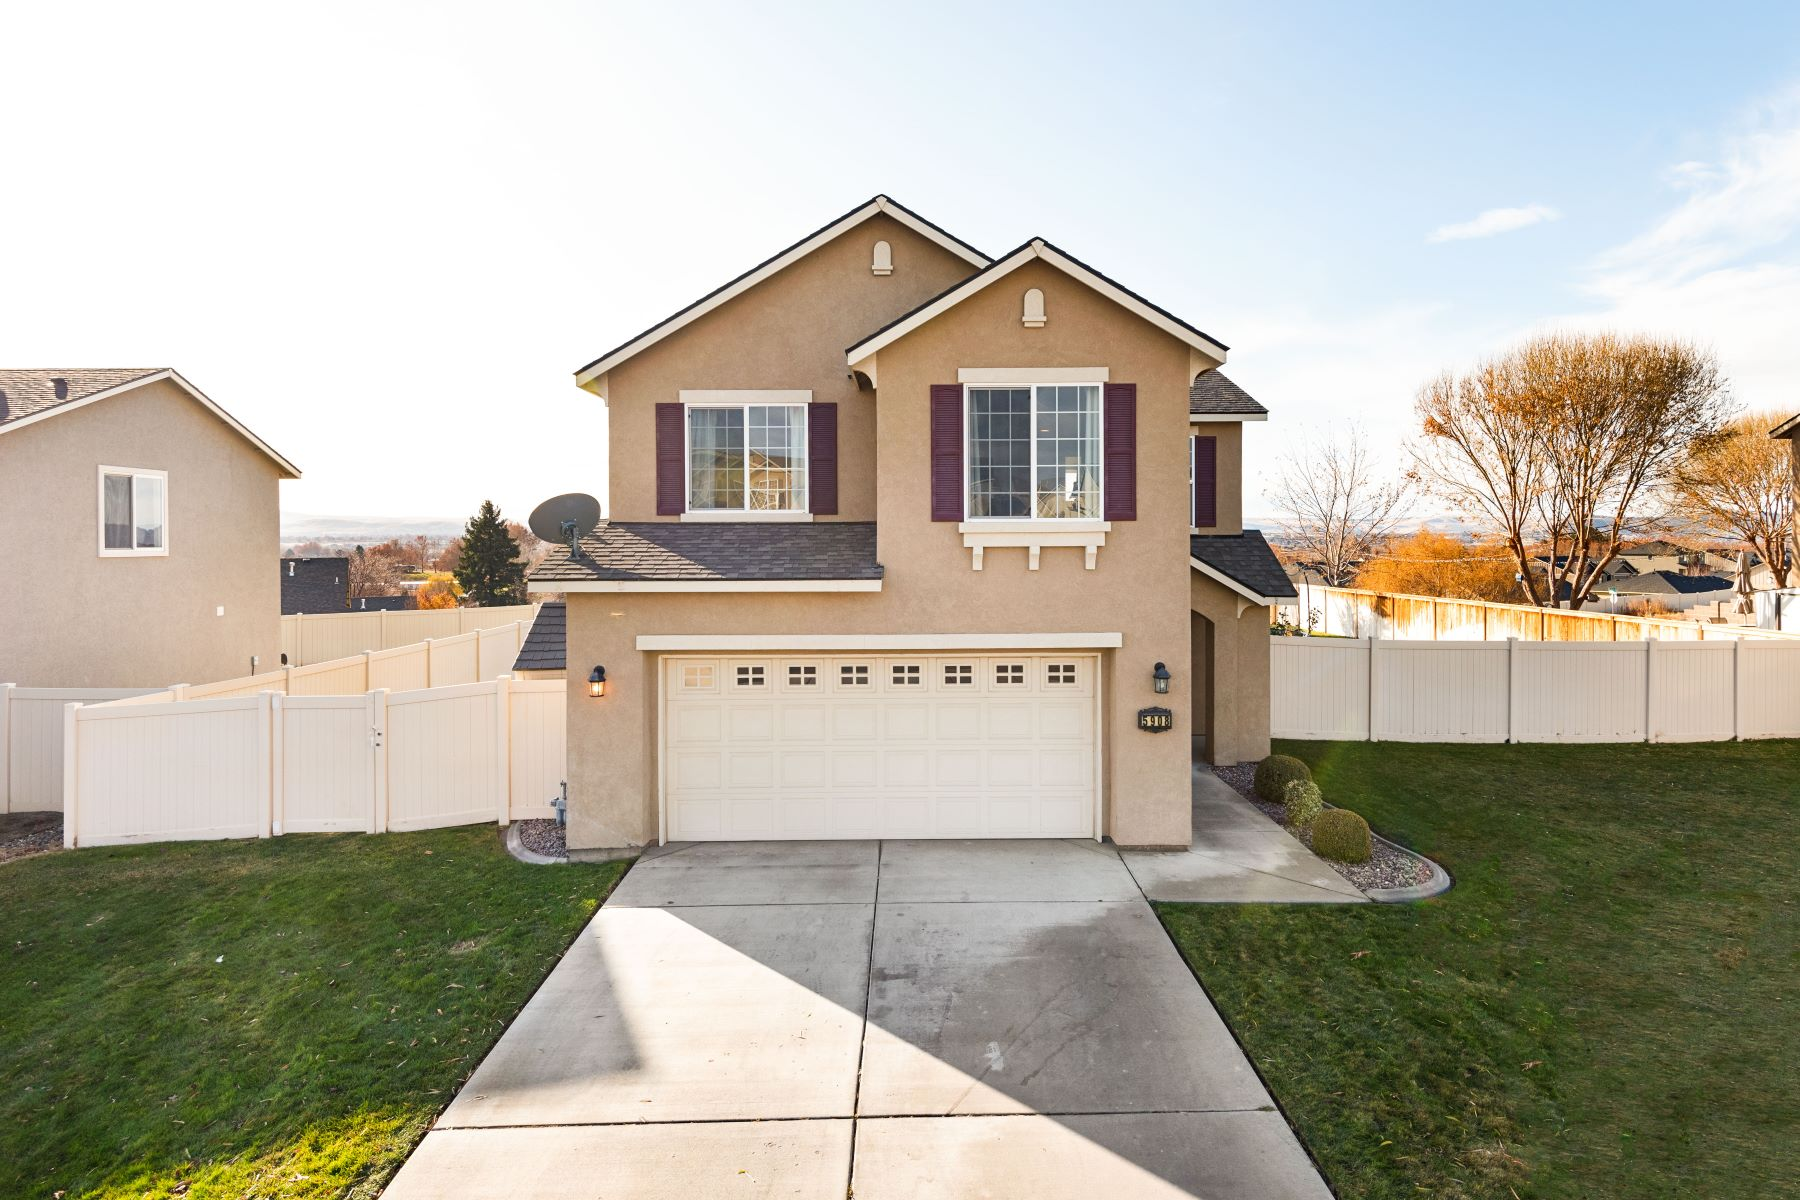 Single Family Homes for Sale at Home with a VIEW! 5908 Thistledown Drive Pasco, Washington 99301 United States